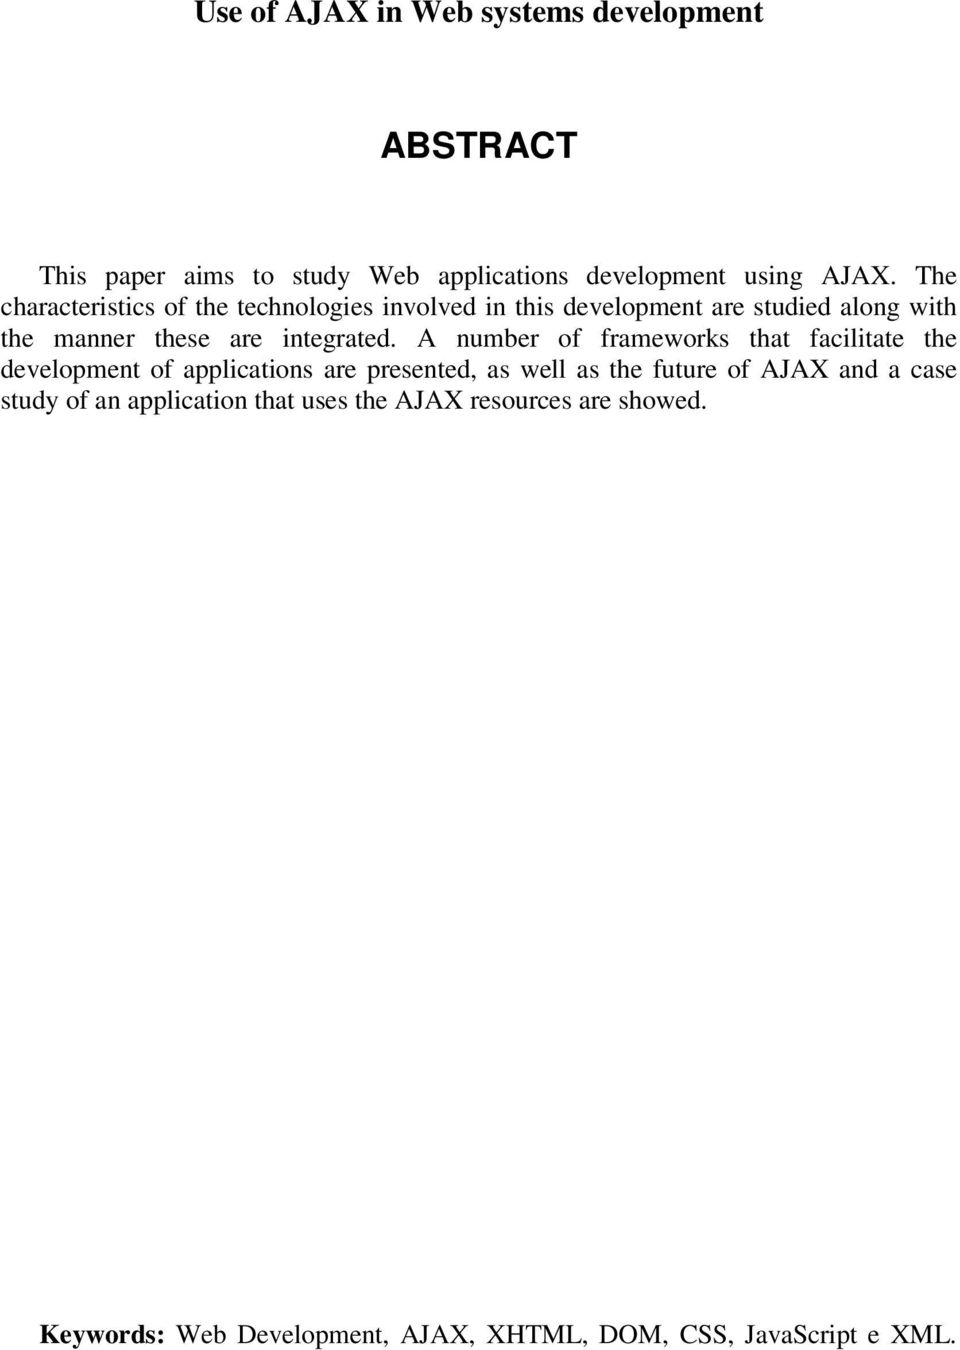 A number of frameworks that facilitate the development of applications are presented, as well as the future of AJAX and a